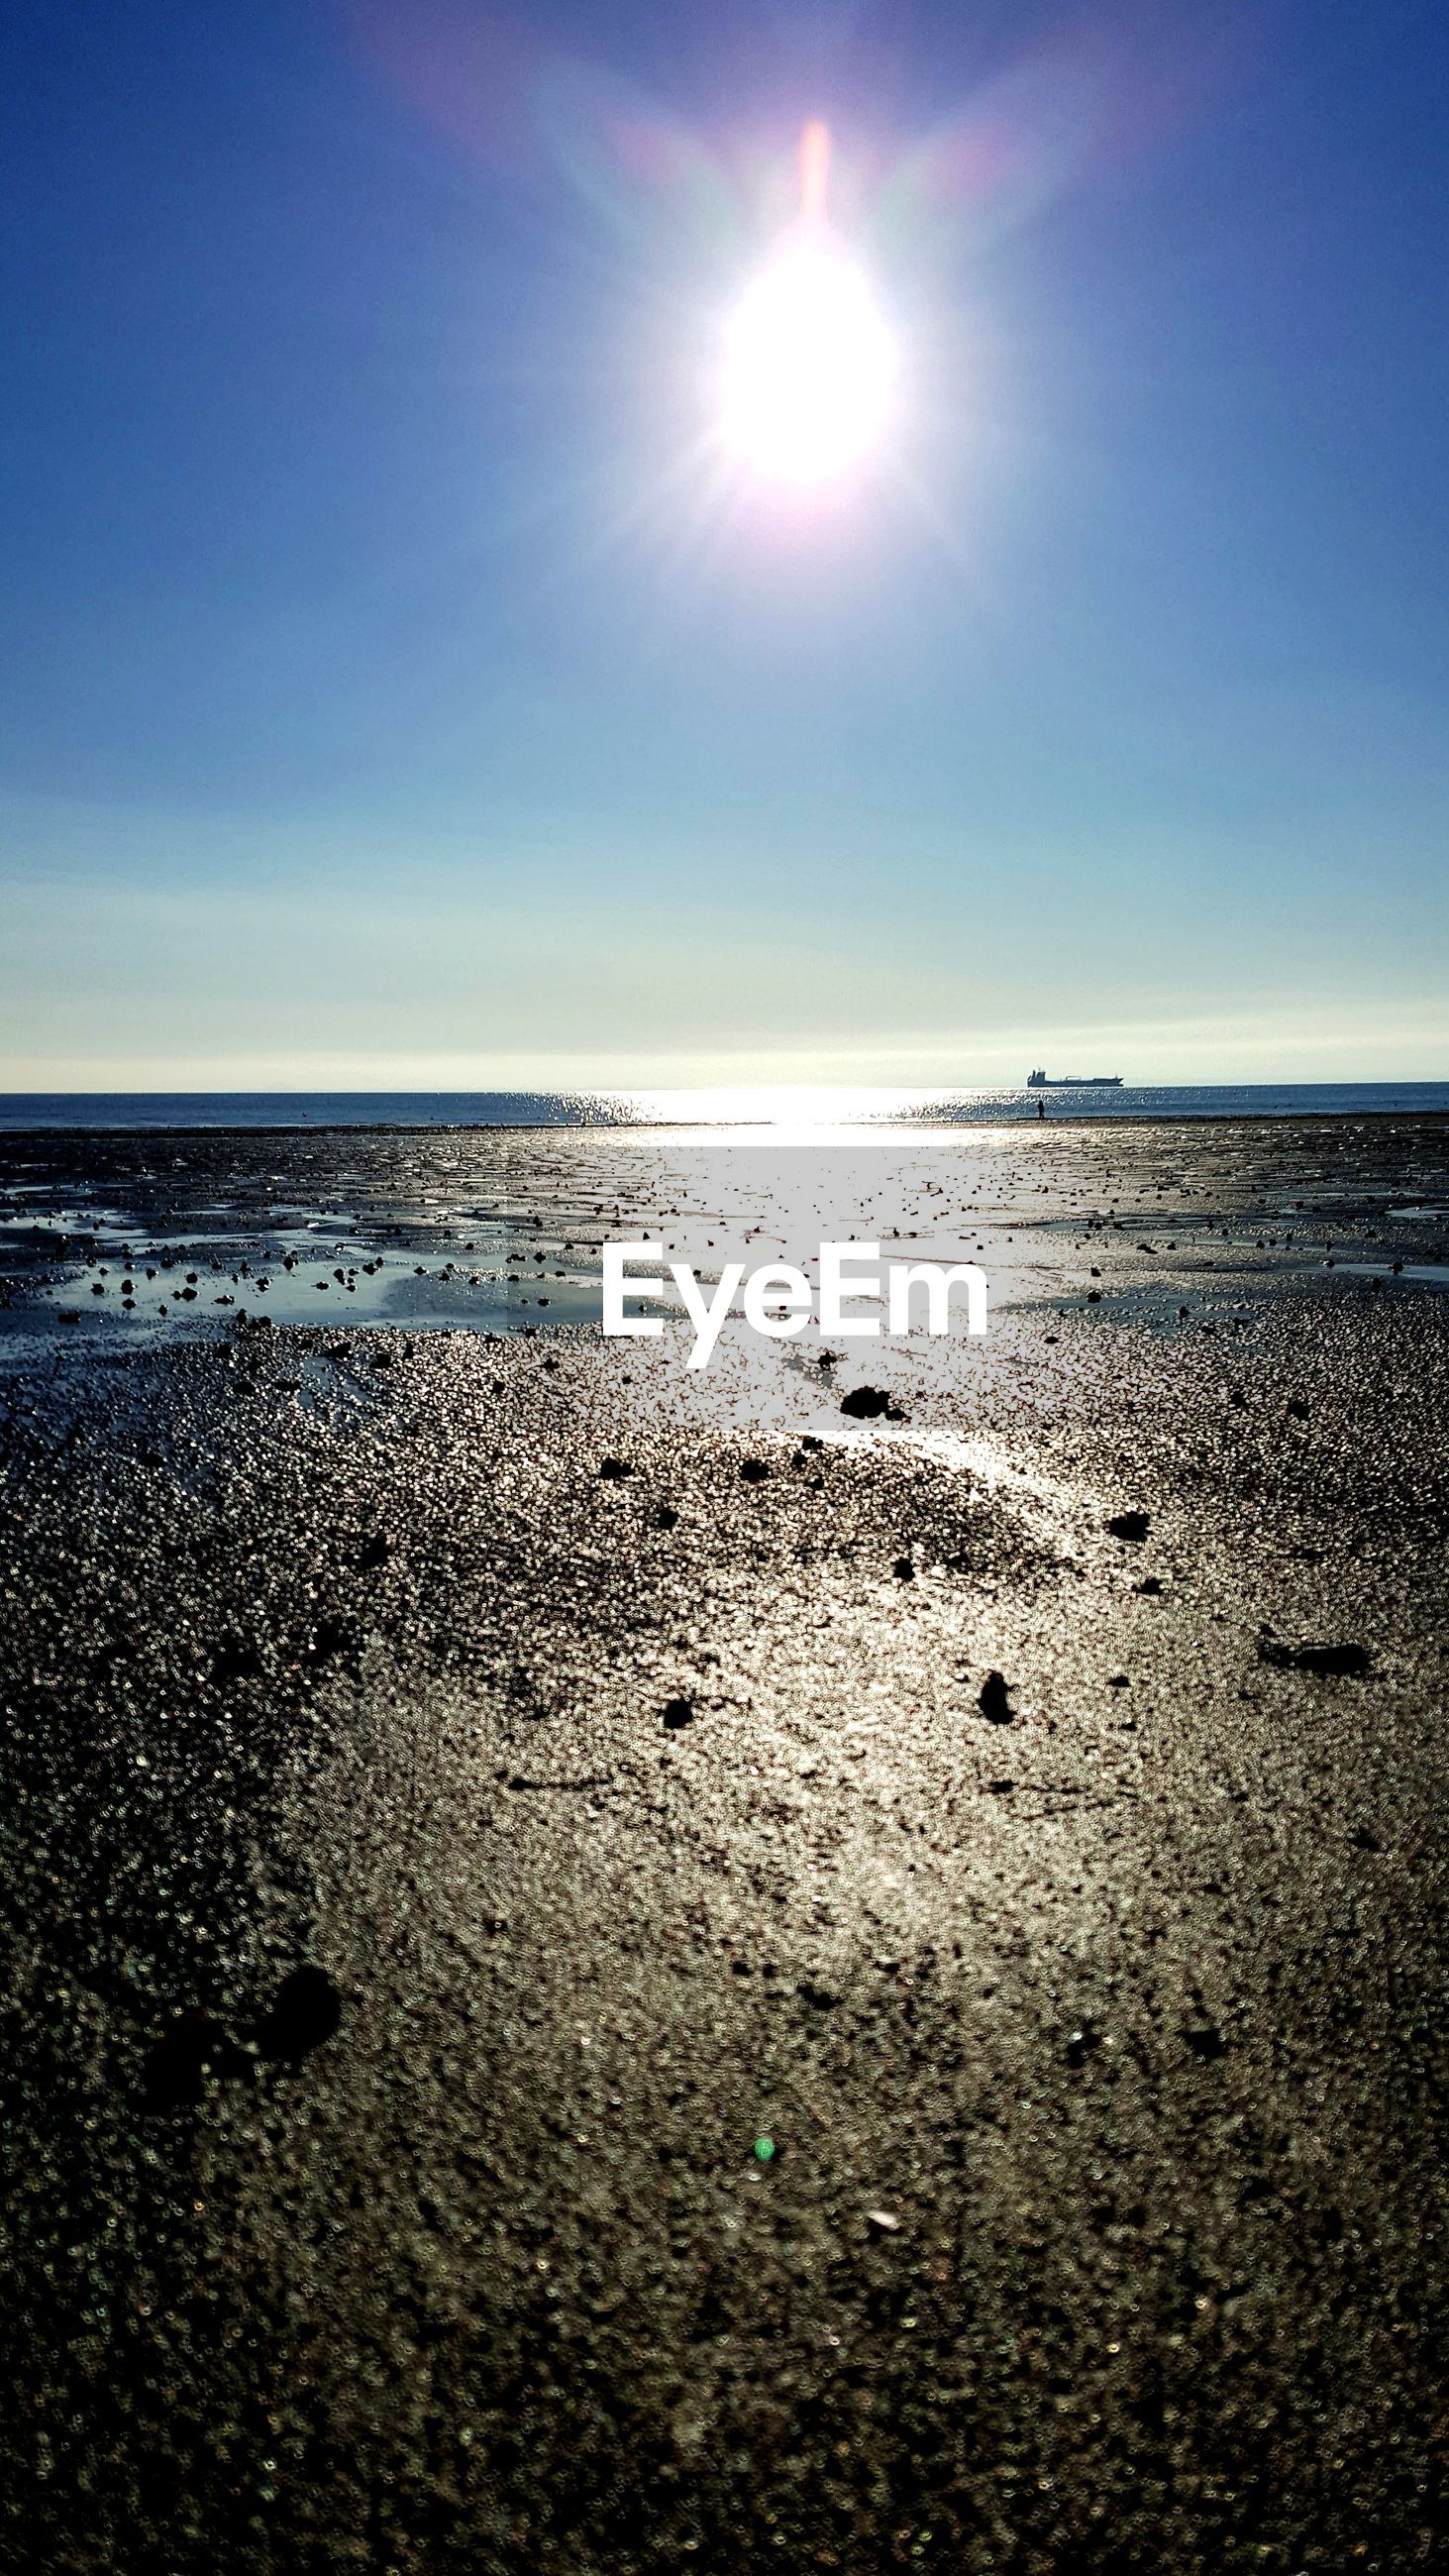 sea, horizon over water, water, beach, beauty in nature, sun, scenics, nature, tranquility, tranquil scene, sunlight, sky, shore, sand, idyllic, outdoors, no people, clear sky, day